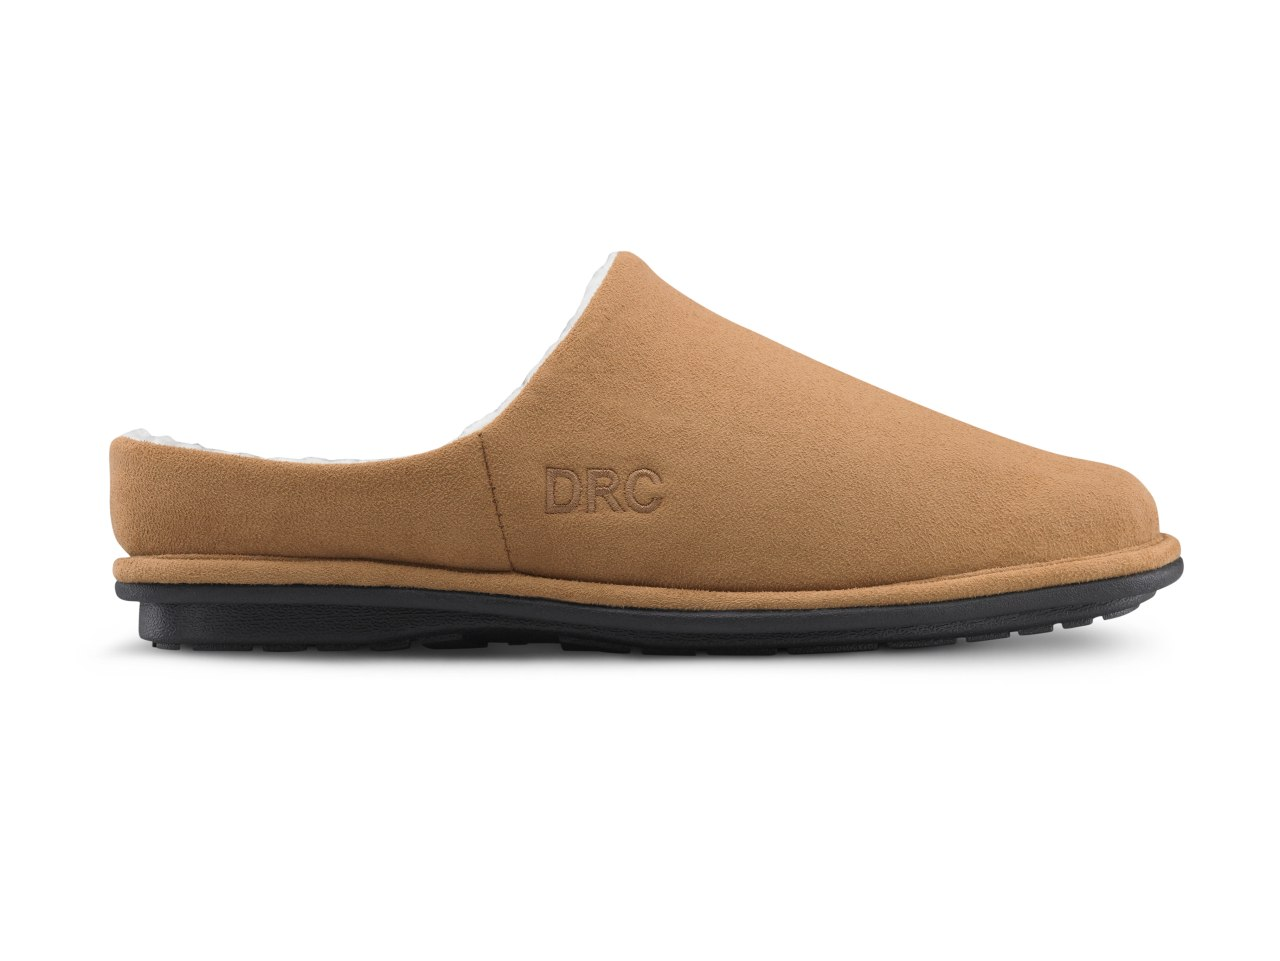 Dr. Comfort Easy Men's Slippers - Camel